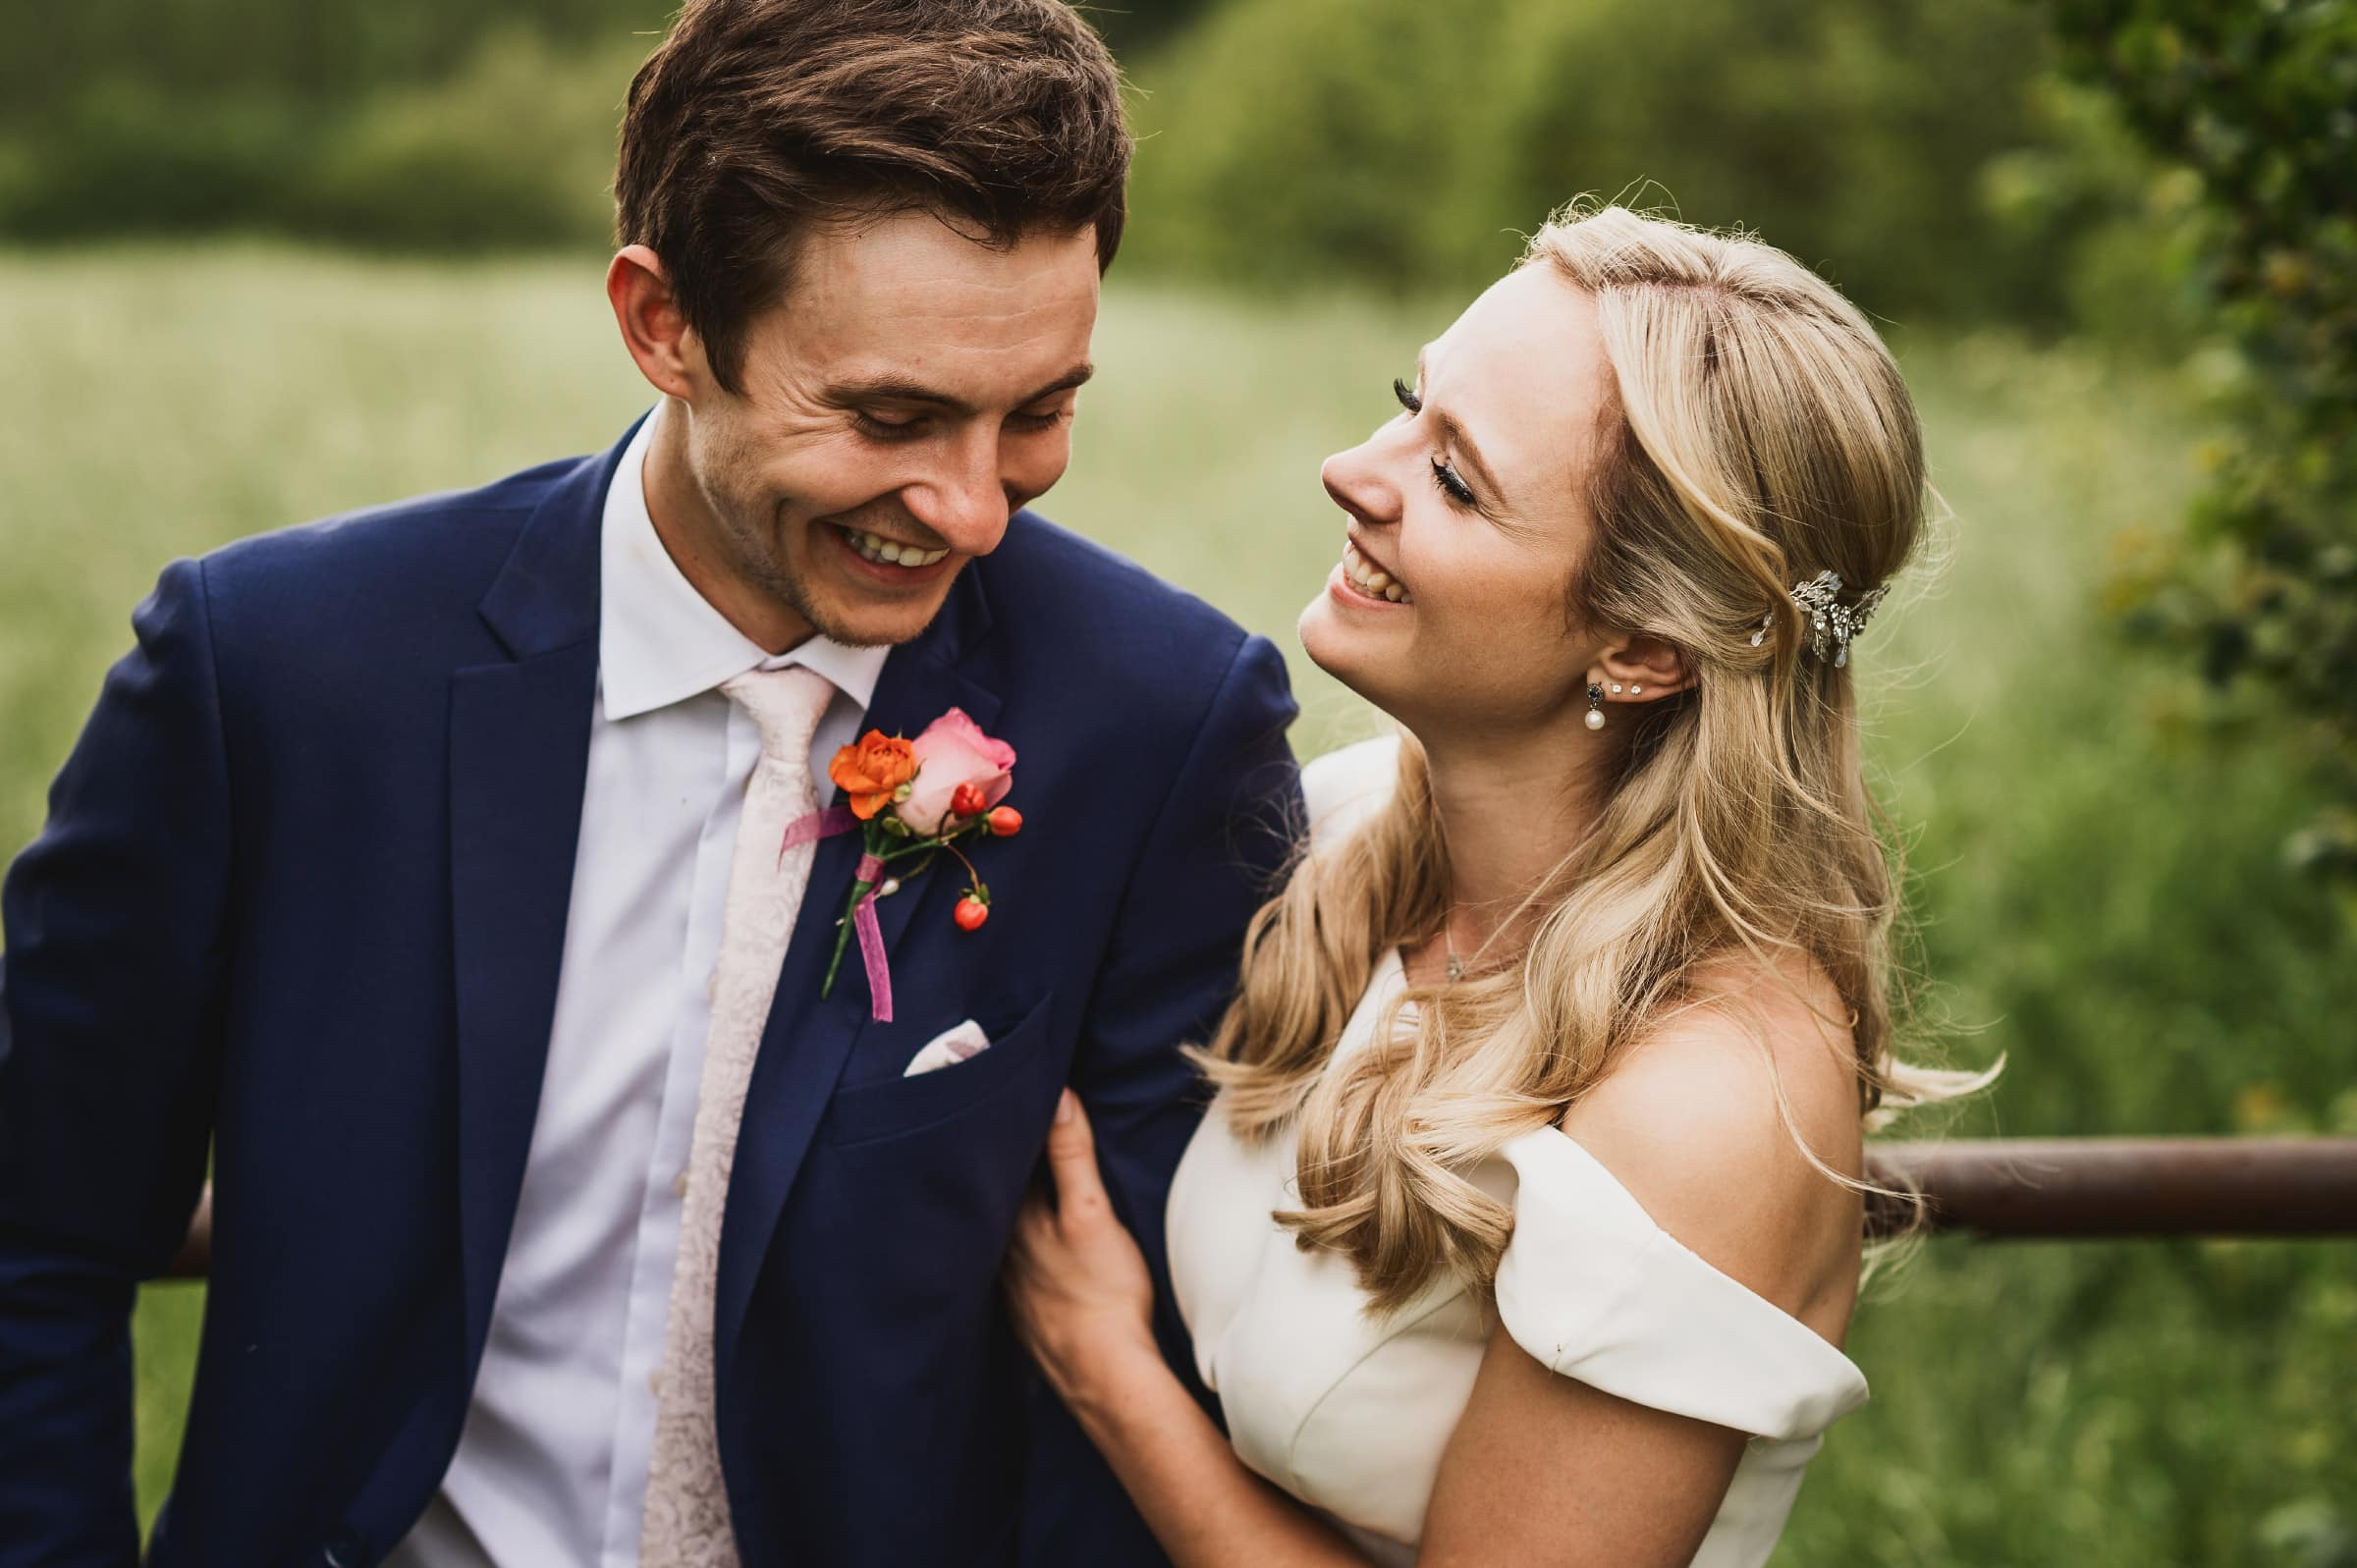 Newly married bride and groom laughing together in field